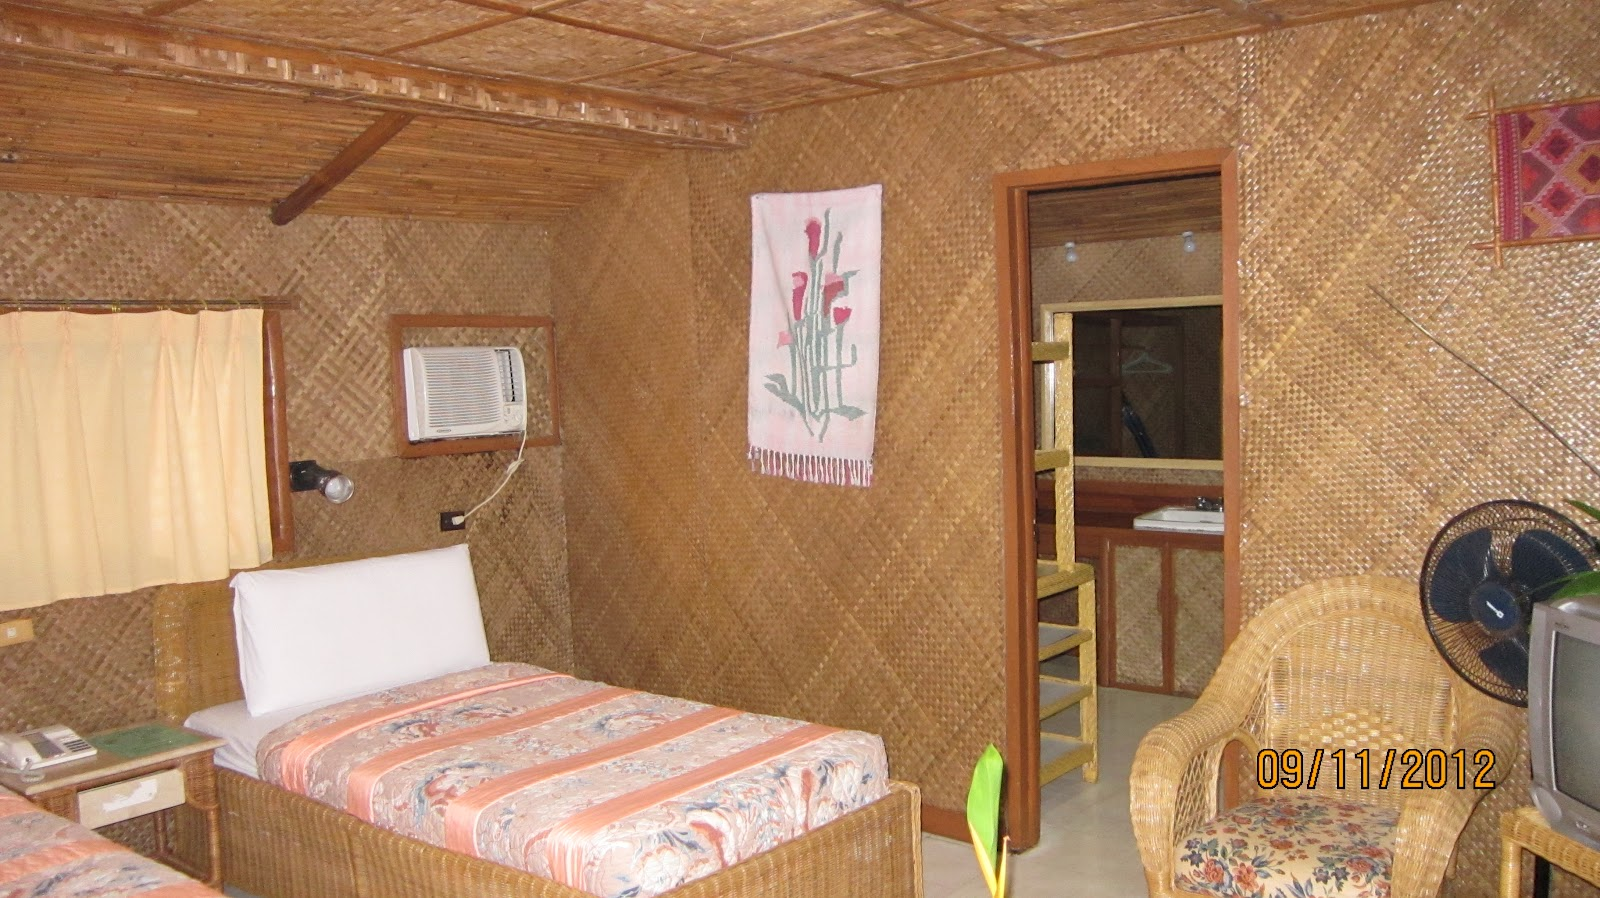 The room was what a dolled up nipa hut would look like wicker and rattan furniture yakan prints nardas weaves truth to tell it was bordering on gauche